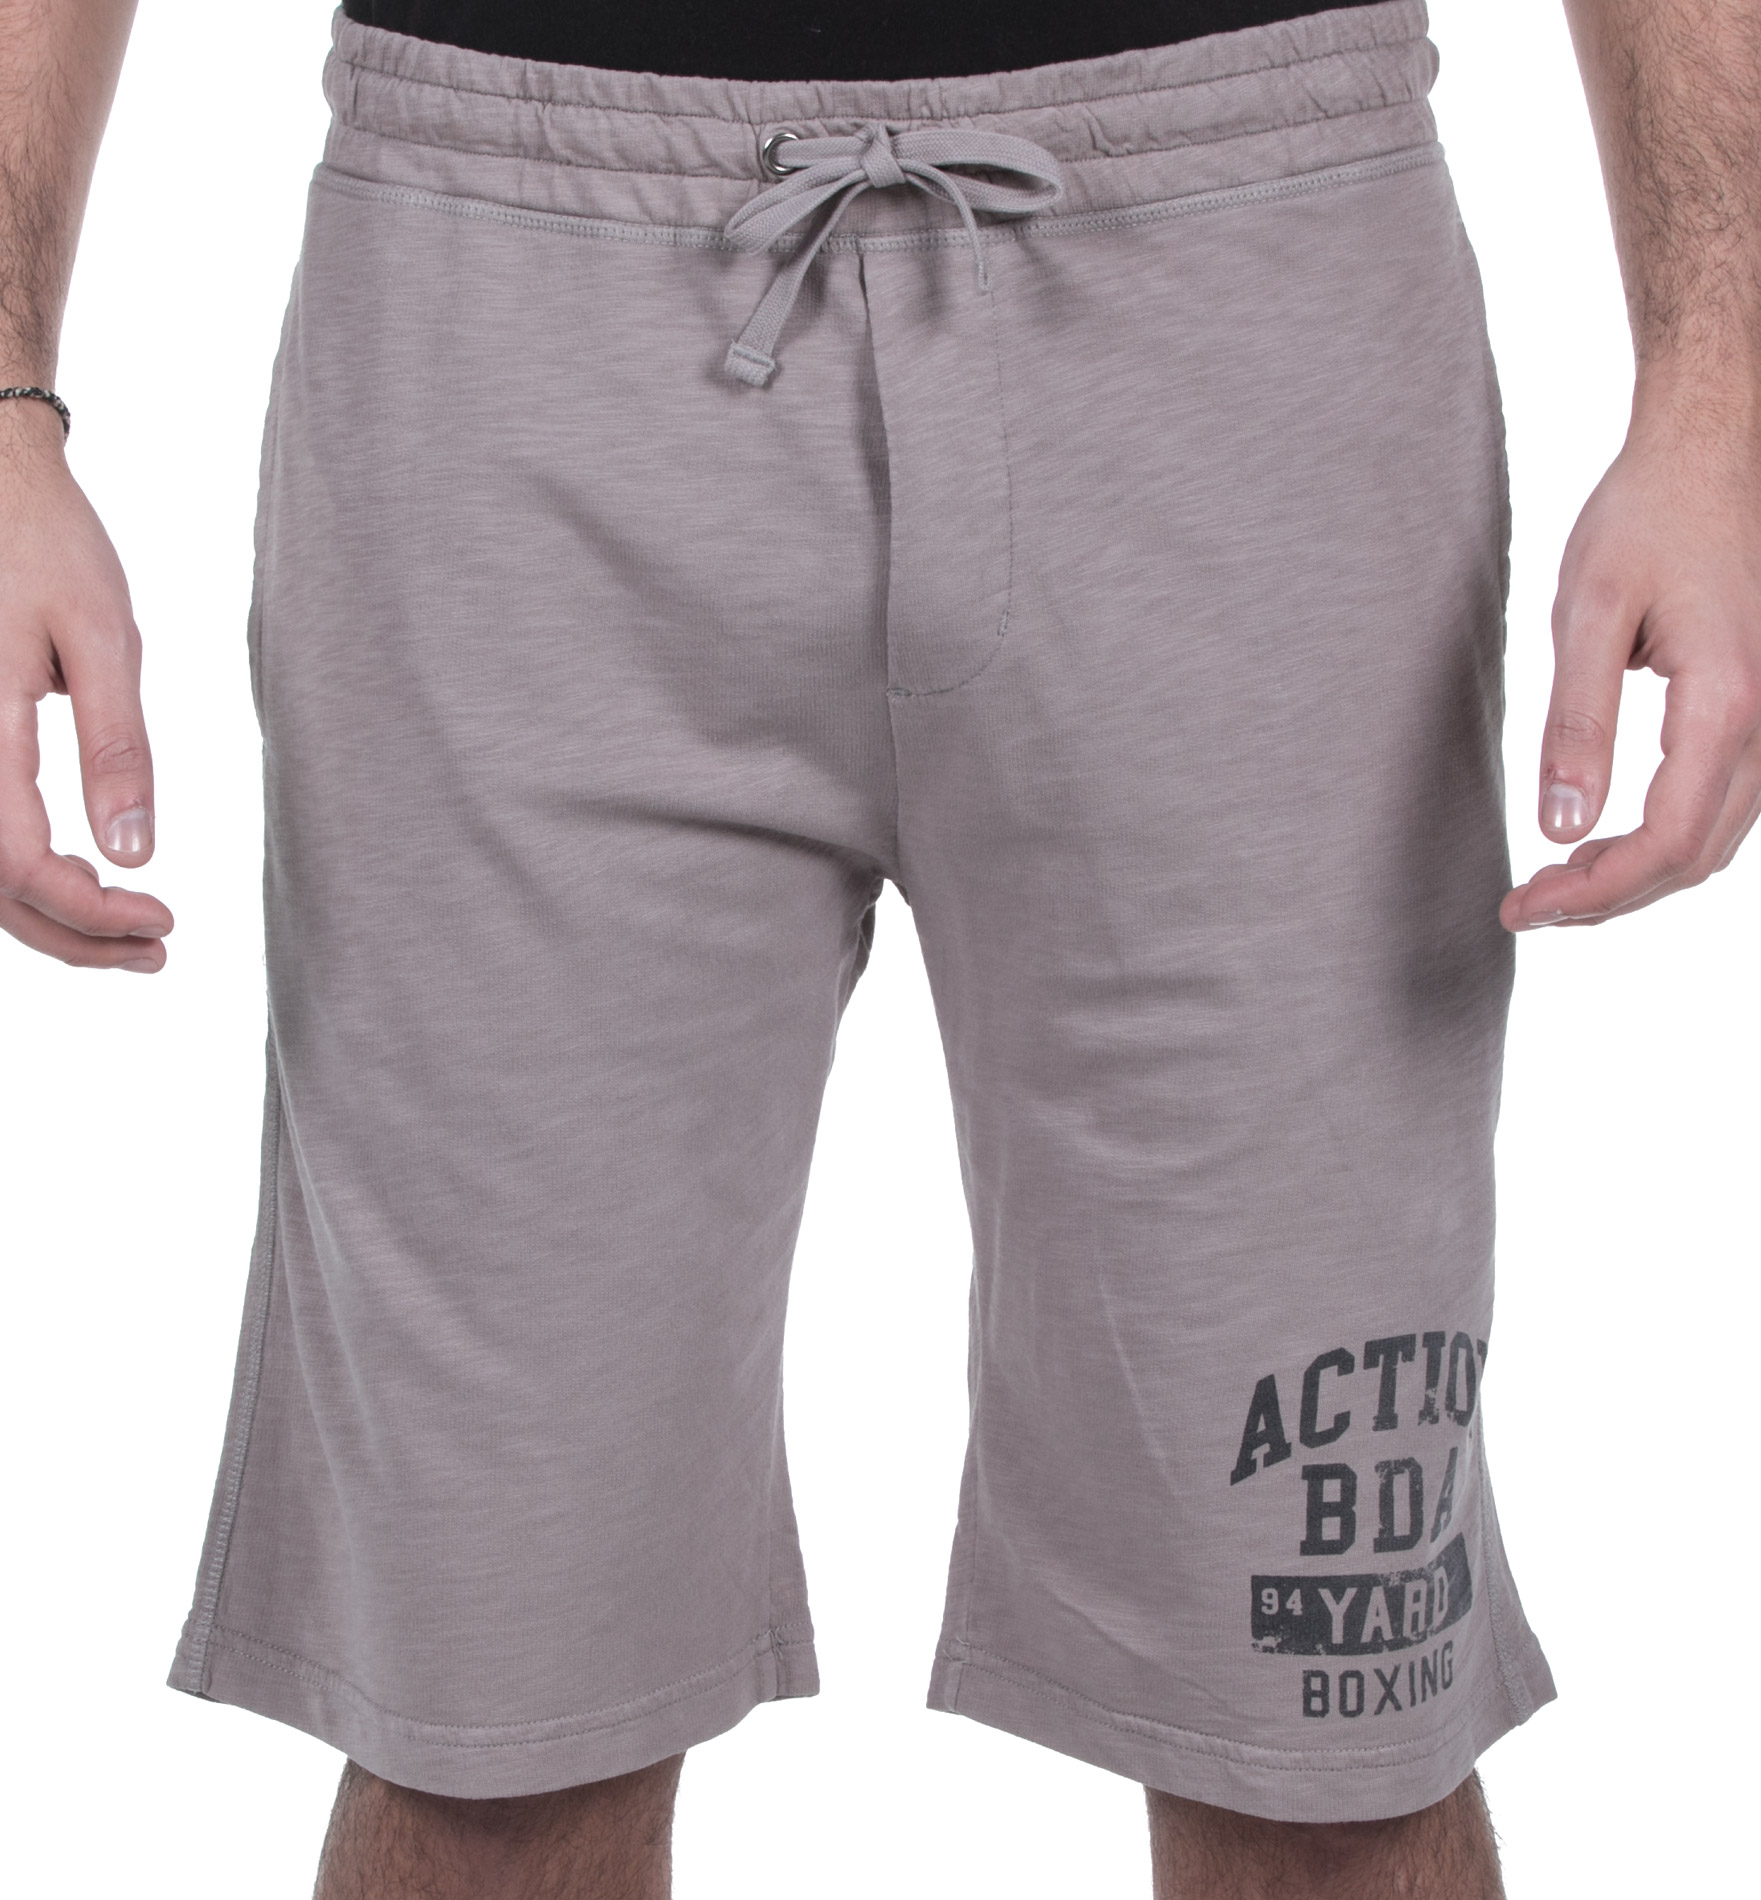 BODY ACTION 033735-01-03A Γκρί